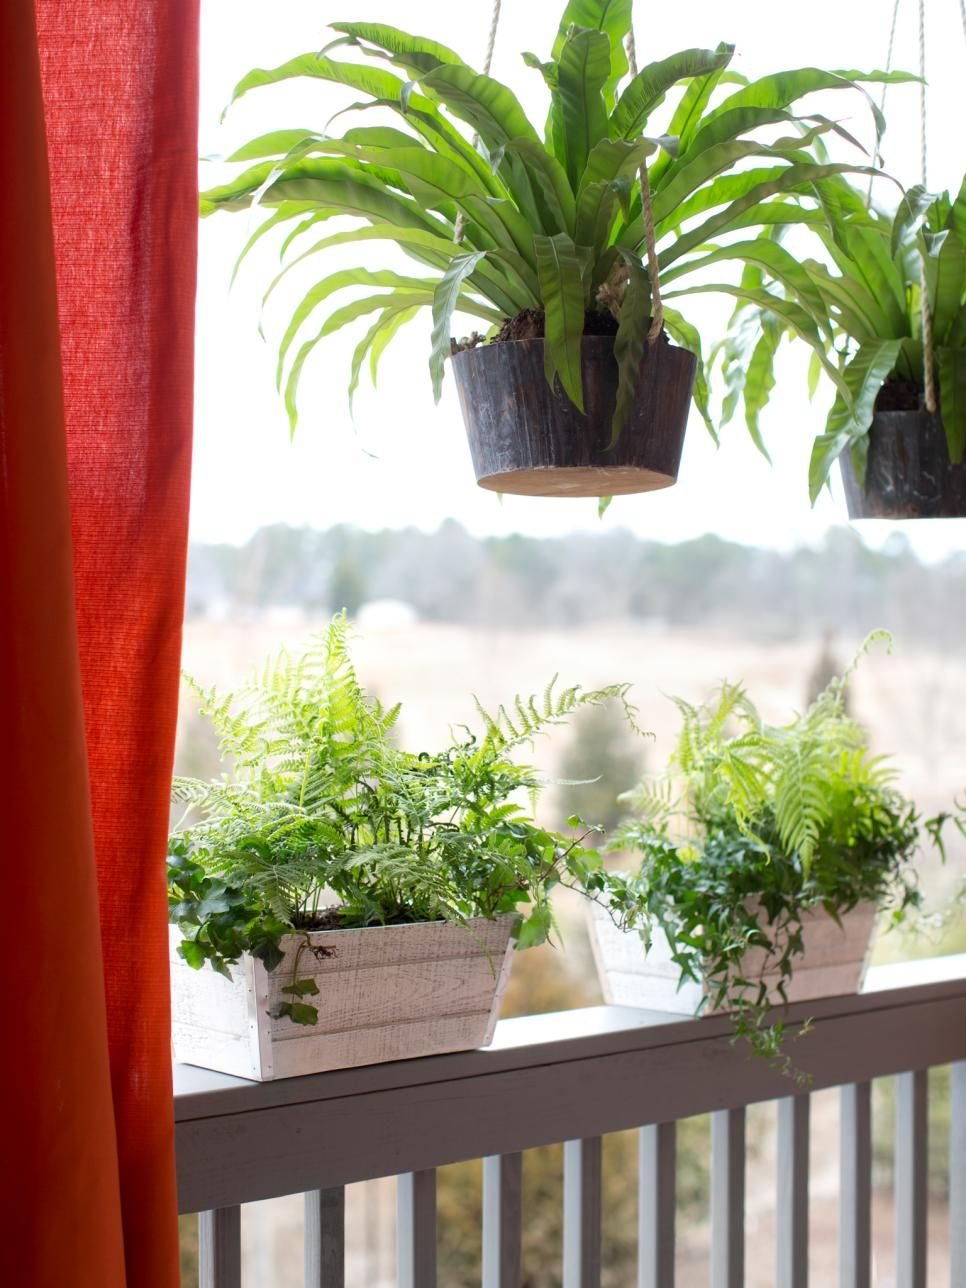 Add Life To Your Covered Porch Or Patio Without Sacrificing Valuable Square Footage With Low Maintenance Hanging Plants Here Ferns A Layer Of